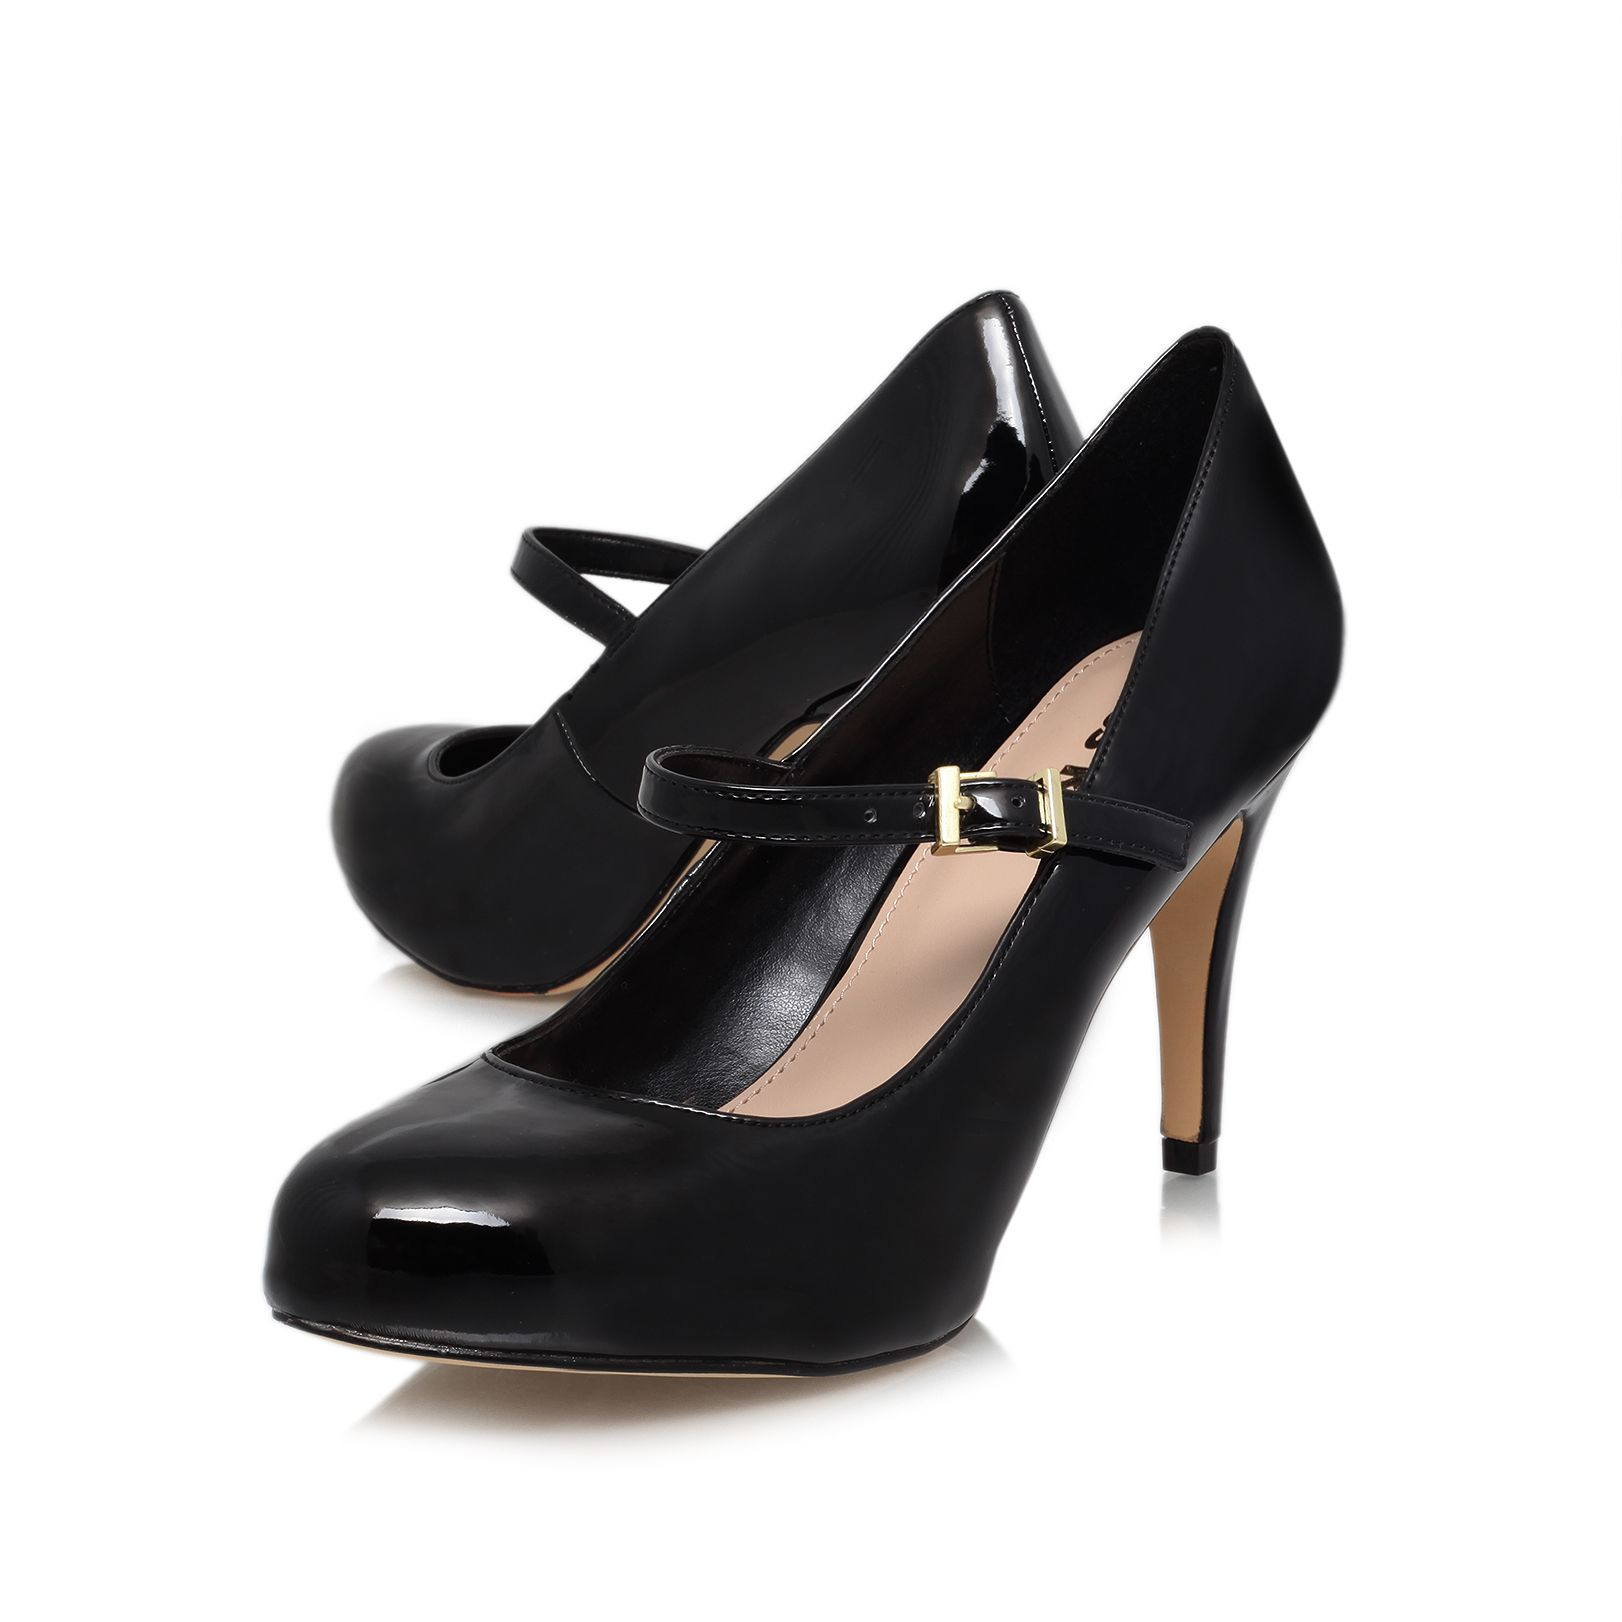 Comet high heeled court shoes